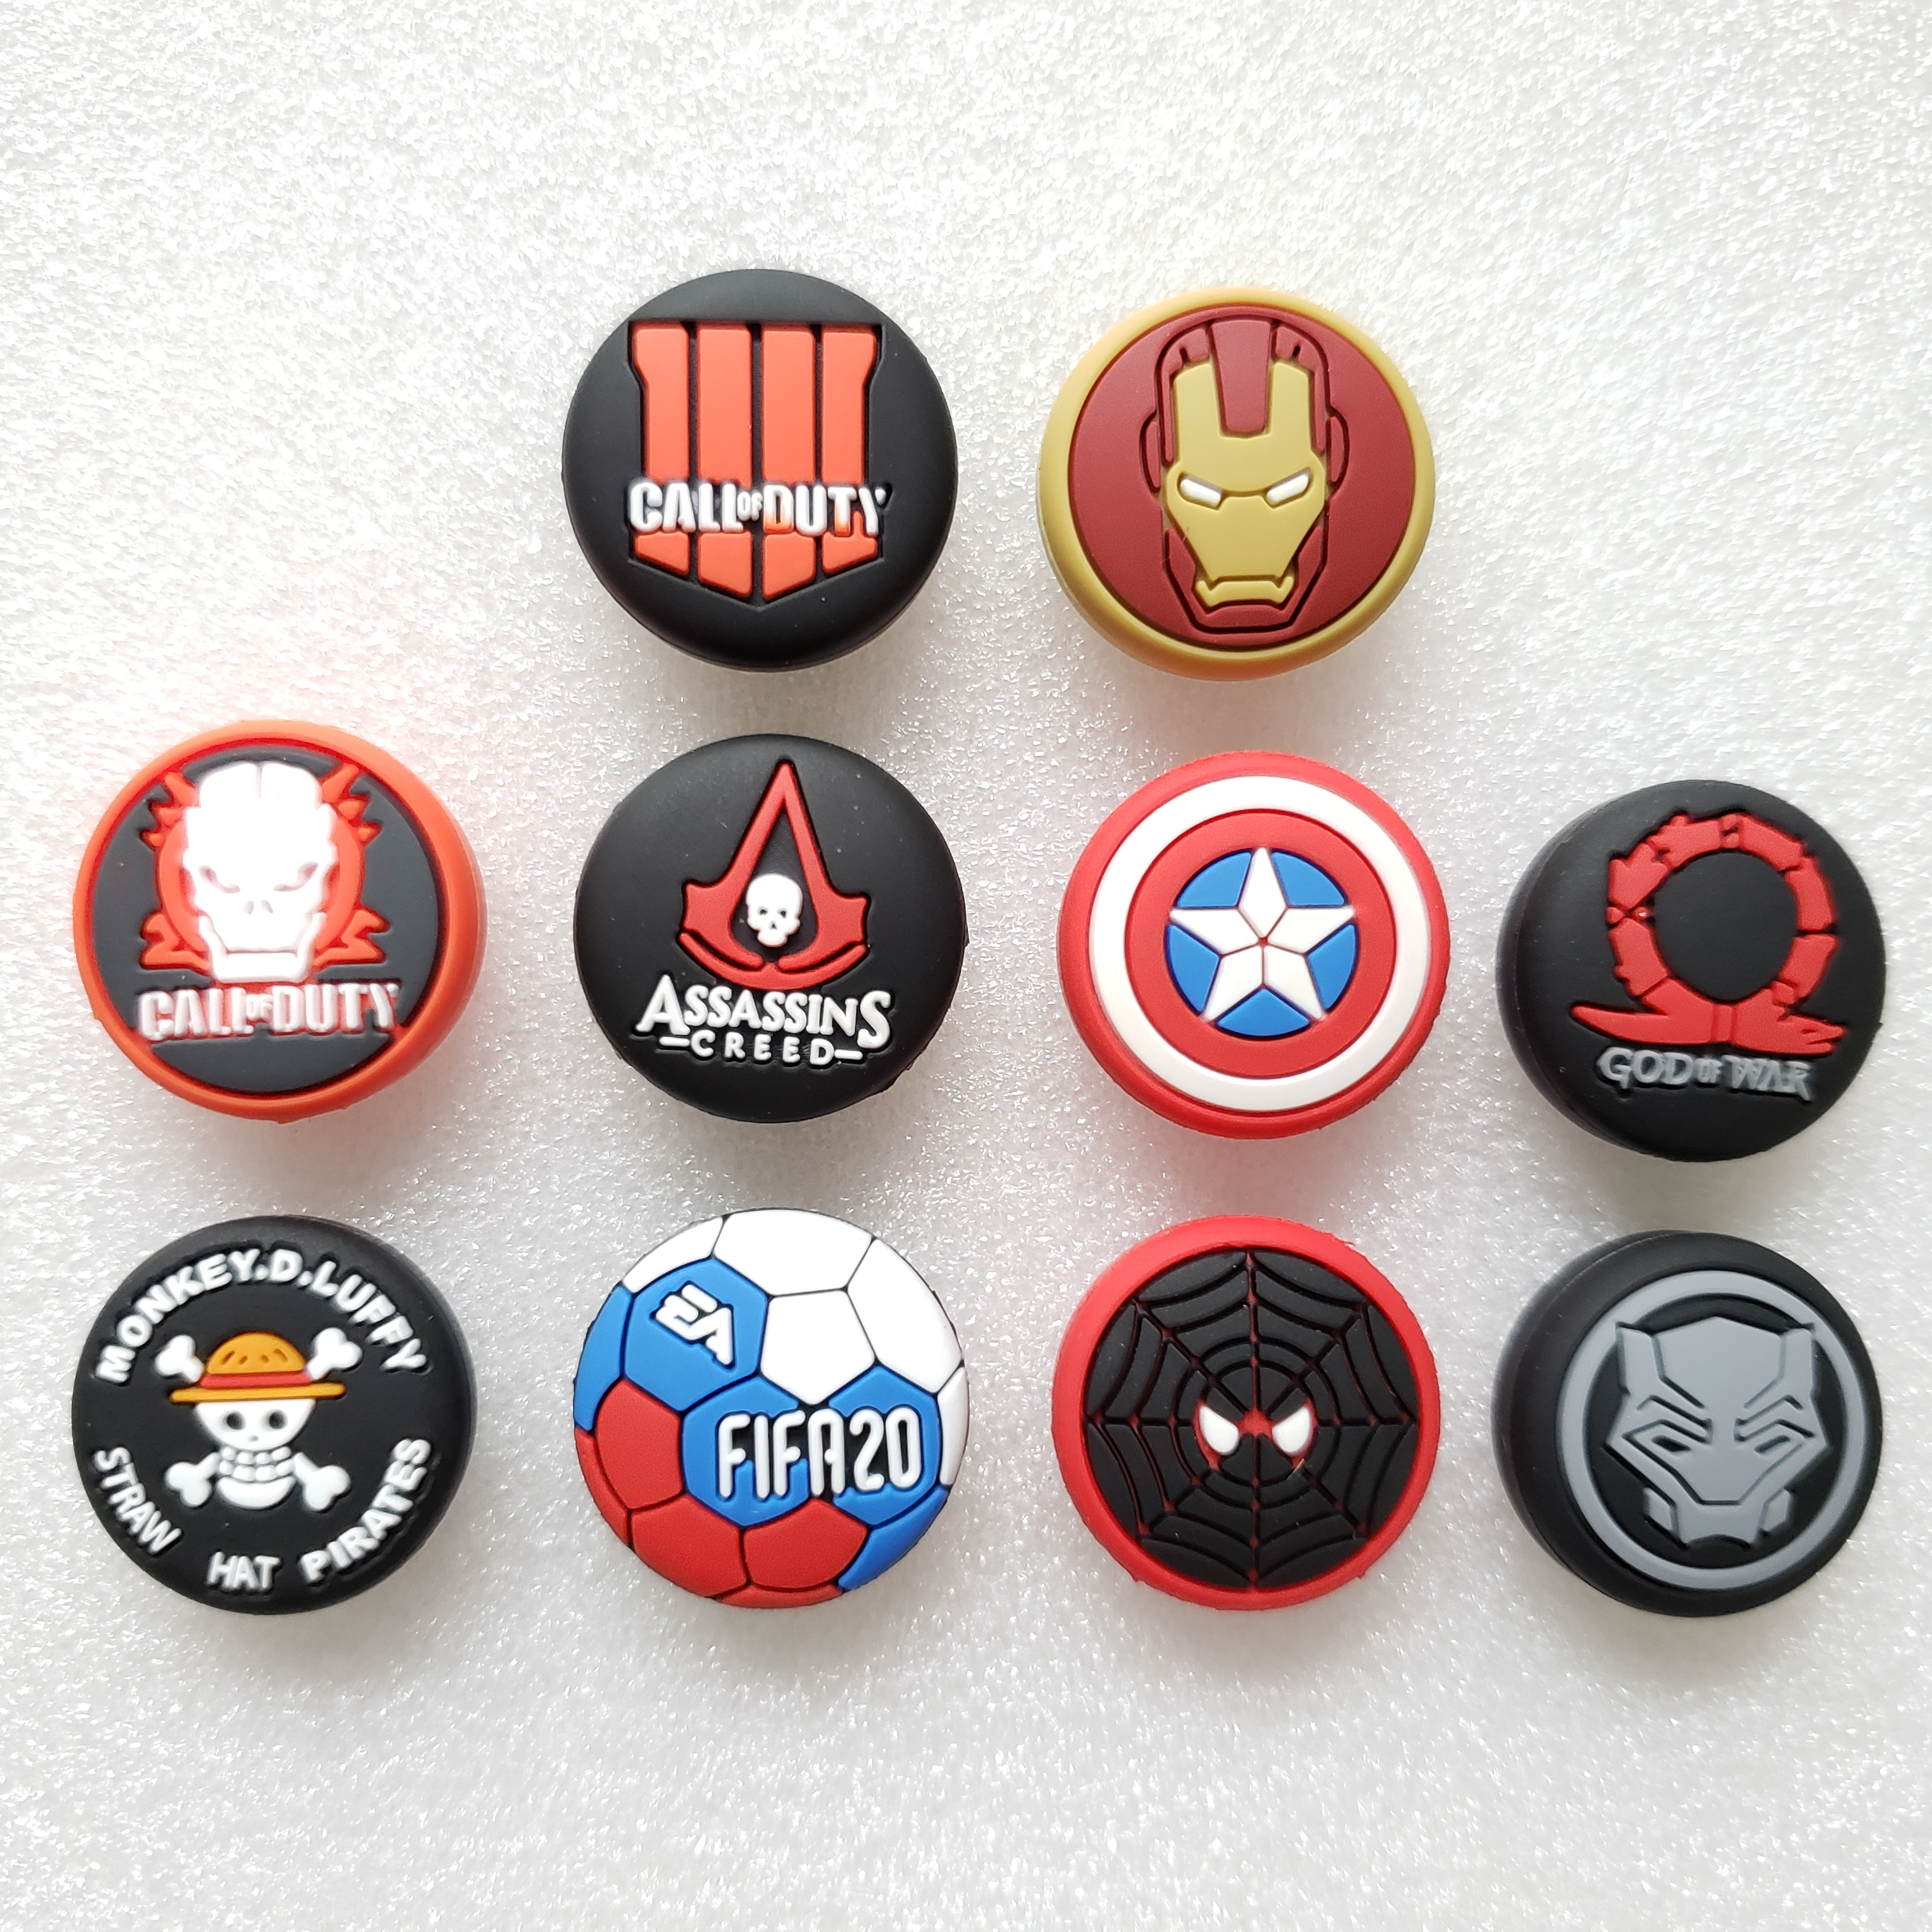 Avengers Call duty Thumb Stick Grip Cap Thumbstick Joystick Cover Case For Sony PS3 PS4 Slim Xbox One 360 Switch Pro Controller(China)